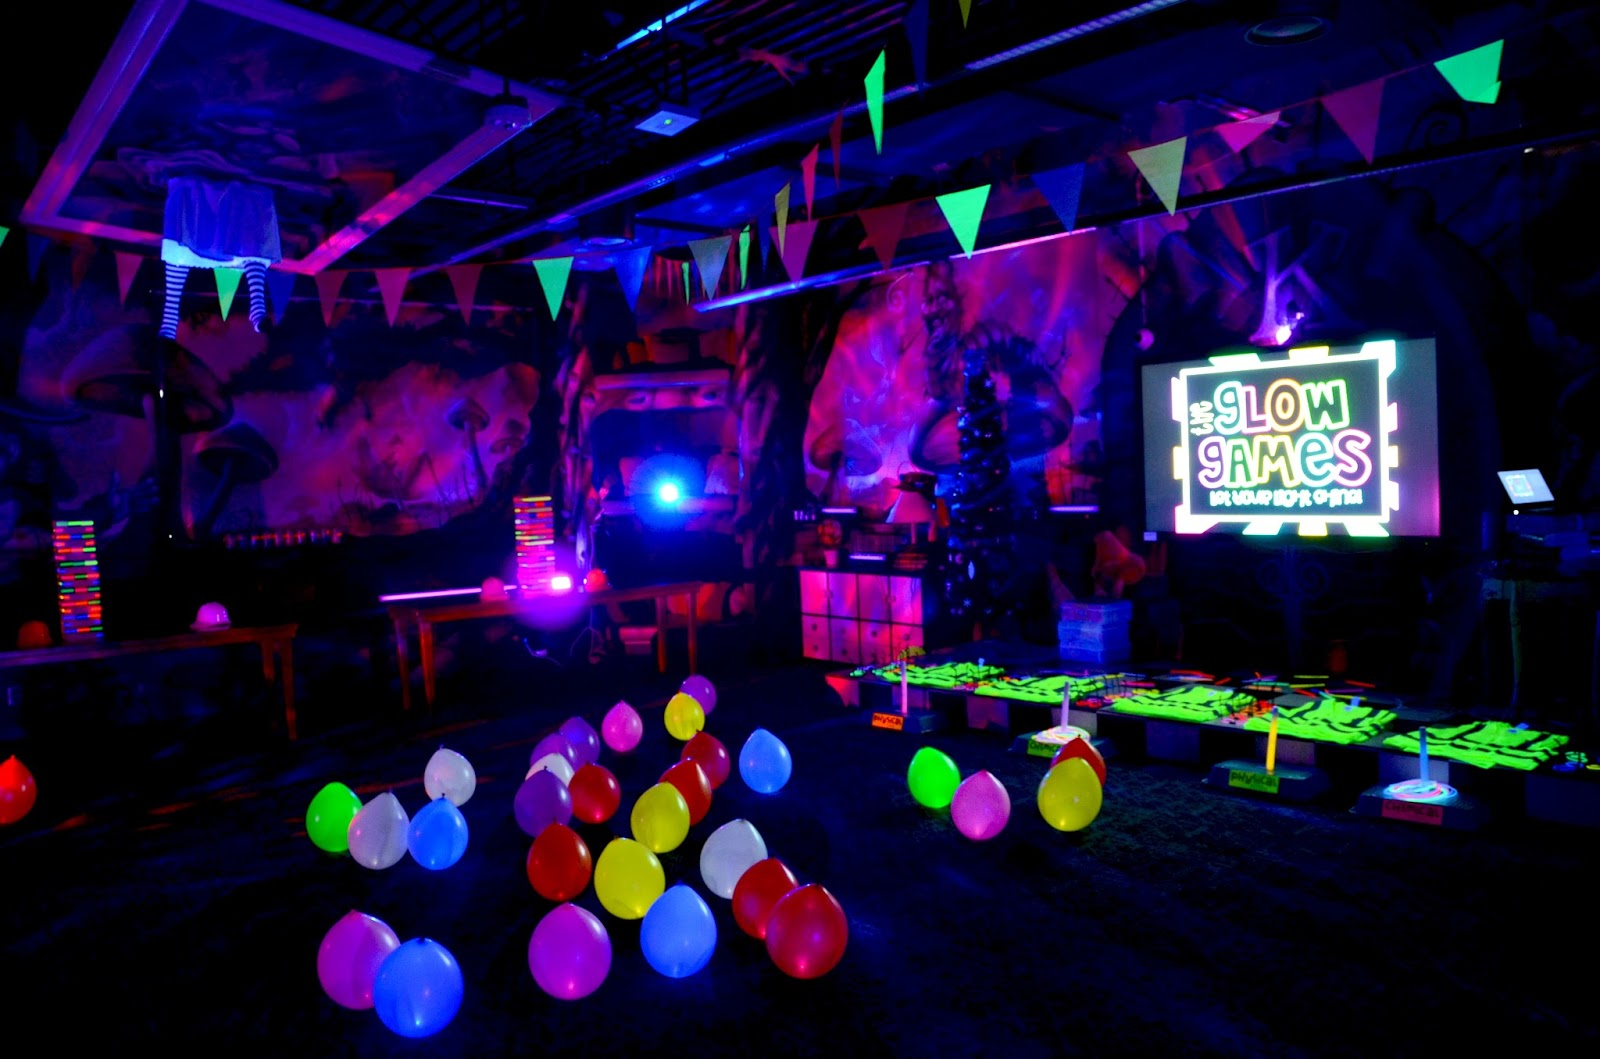 Elementary Shenanigans  The Glow Games  Games for the classroom Games in the classroom are such a powerful way to get our students excited  about learning  It makes the buy in so easy which is super important